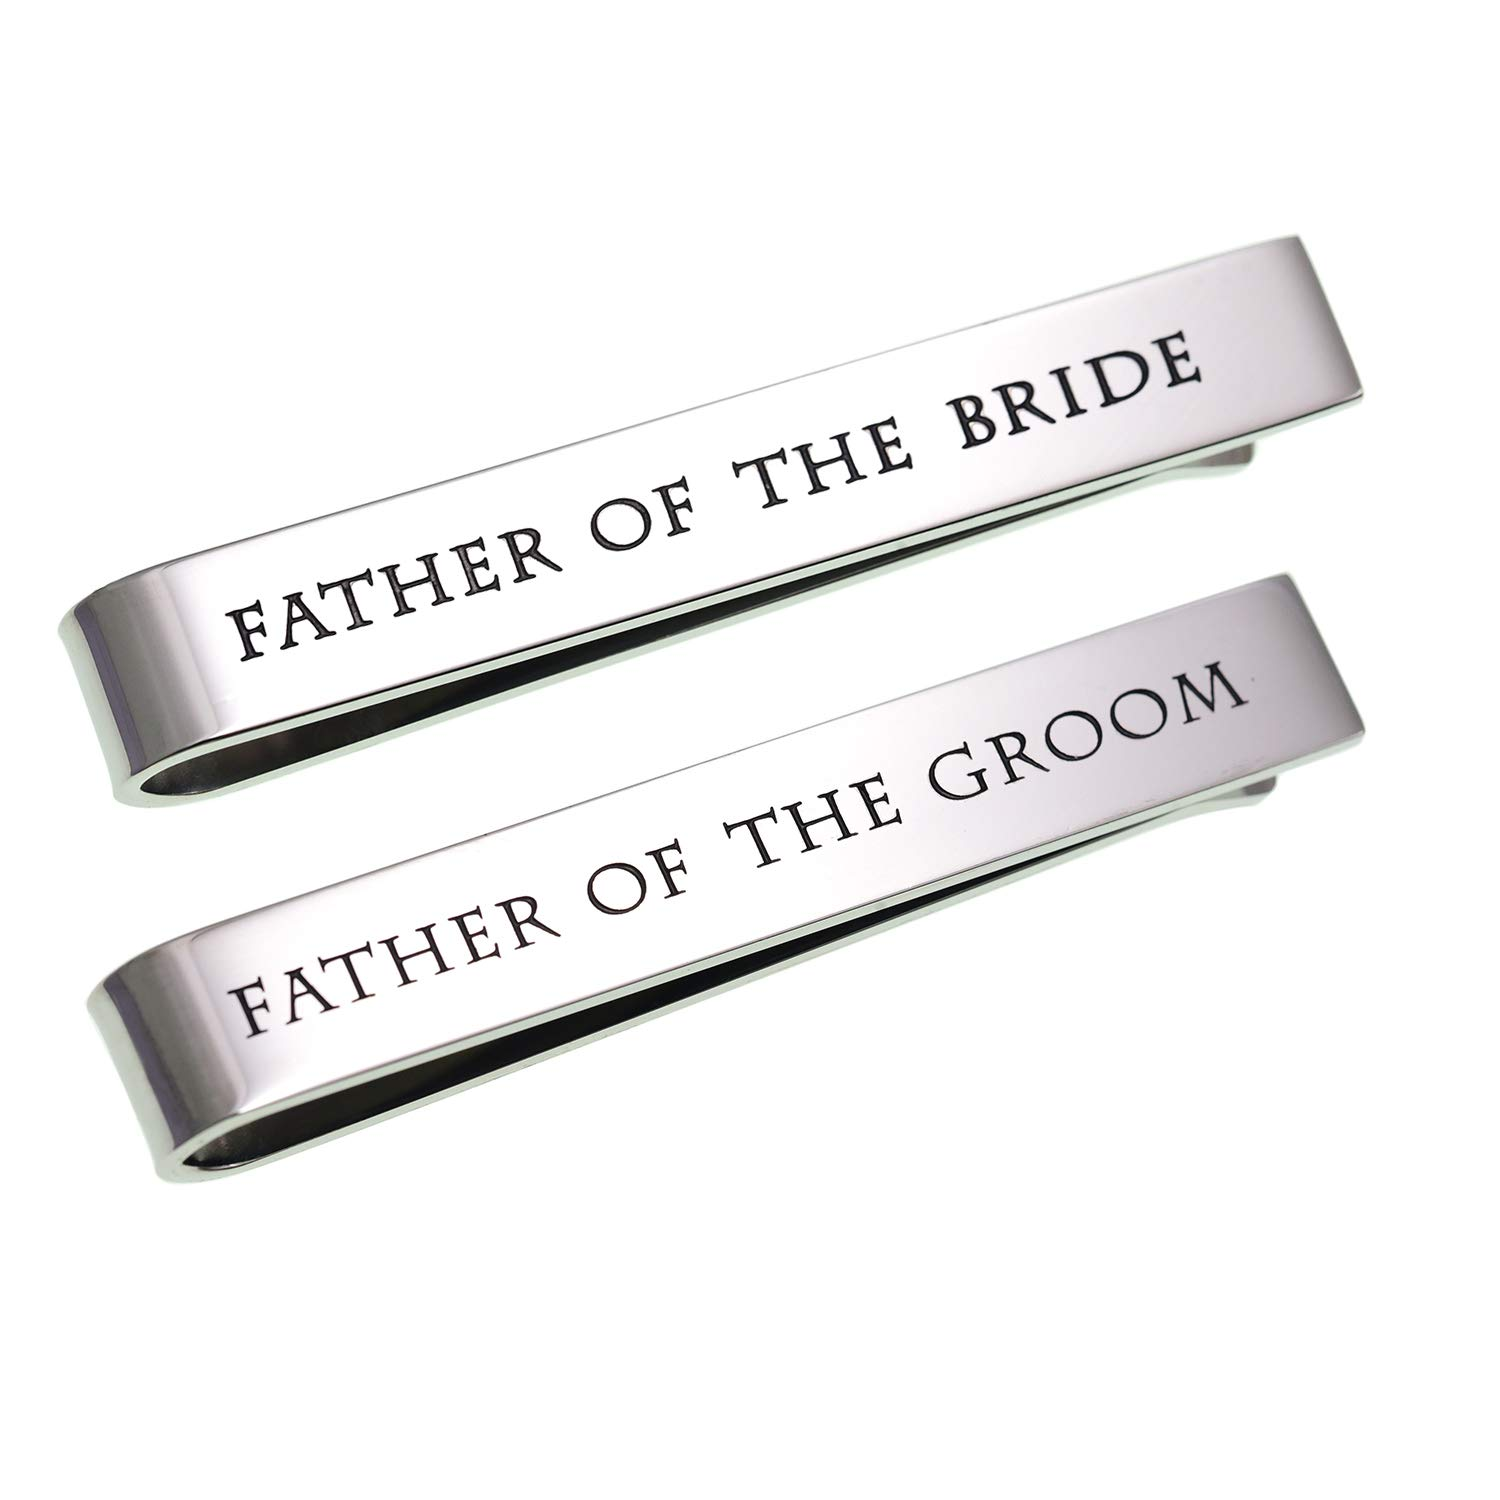 LParkin Stainless Steel Tie Clip Wedding Set - Father of The Groom Tie Clip - Father of The Bride Tie Bar (Set of 2 White)